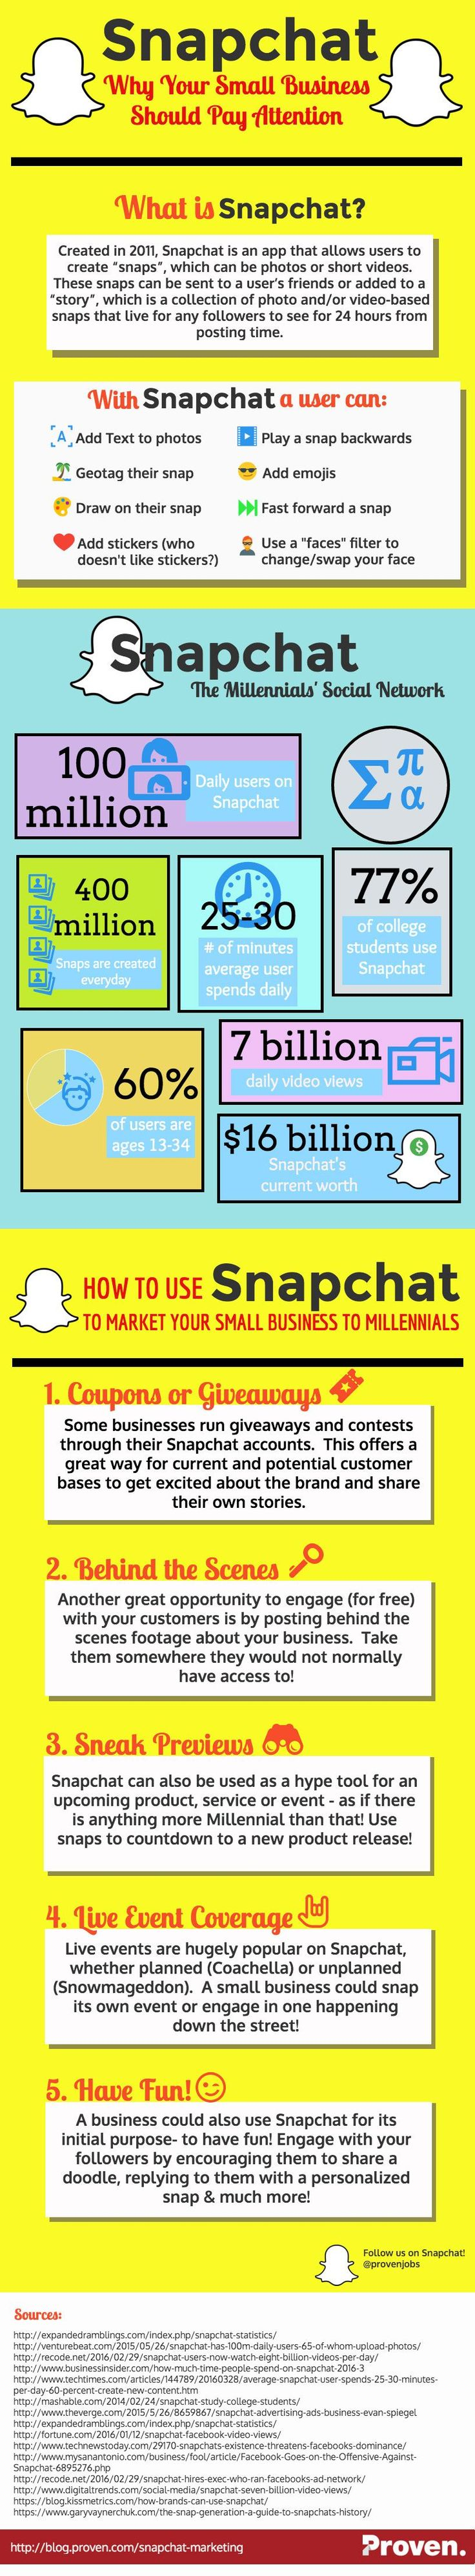 #Snapchat Marketing for Small Business: Here's How (Infographic) https://www.linkedin.com/in/john-gilmore-93122a8?trk=nav_responsive_tab_profile